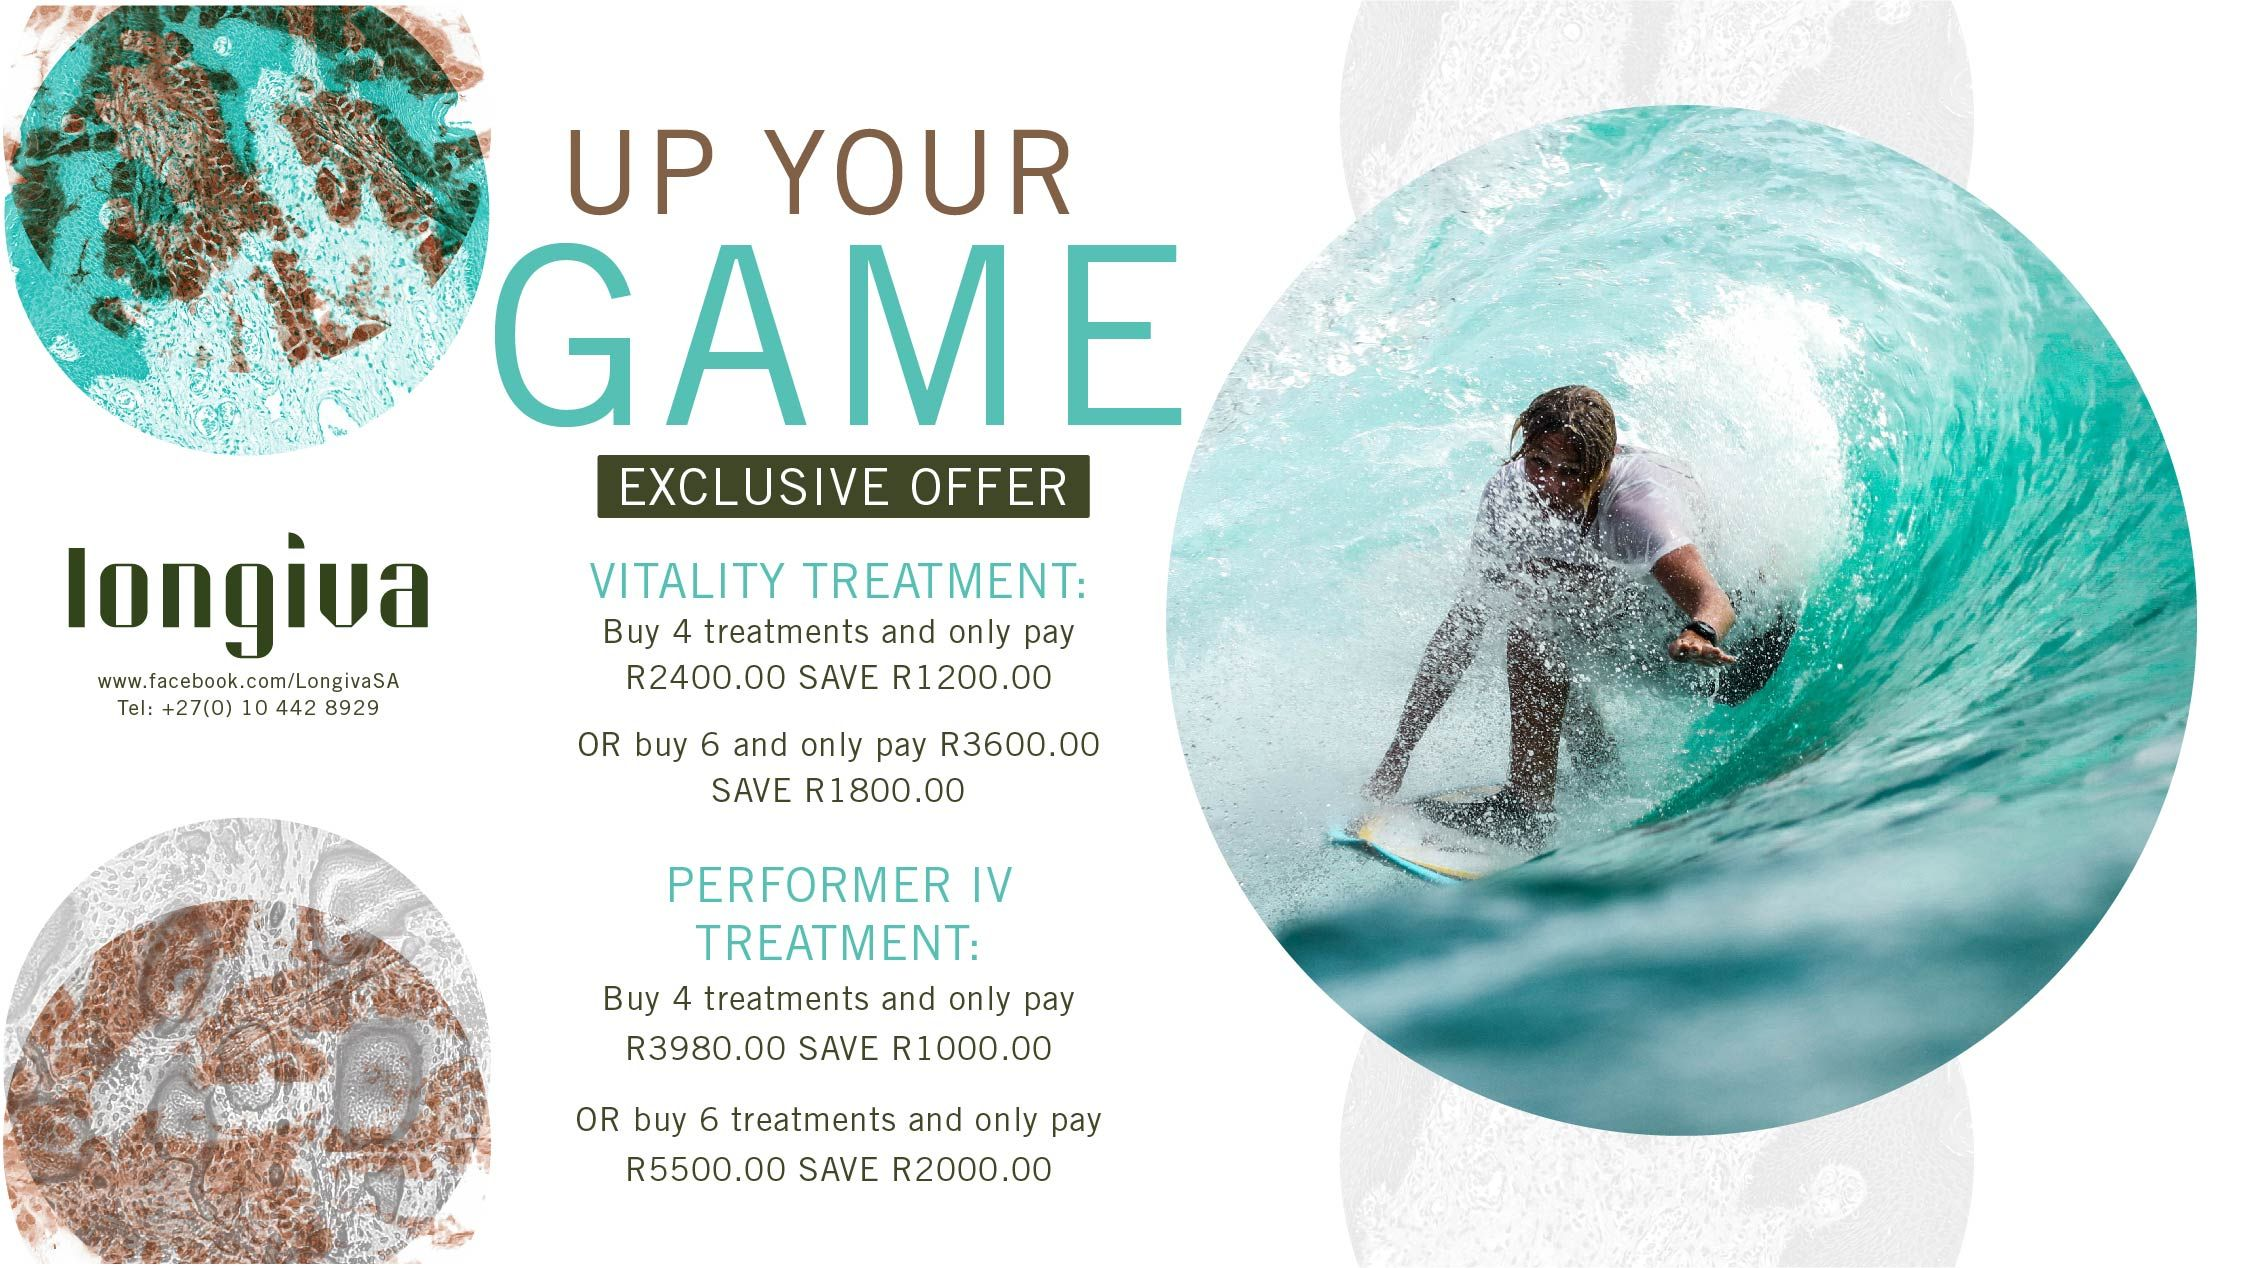 Time to UP your game in 2019 with our VITALITY and